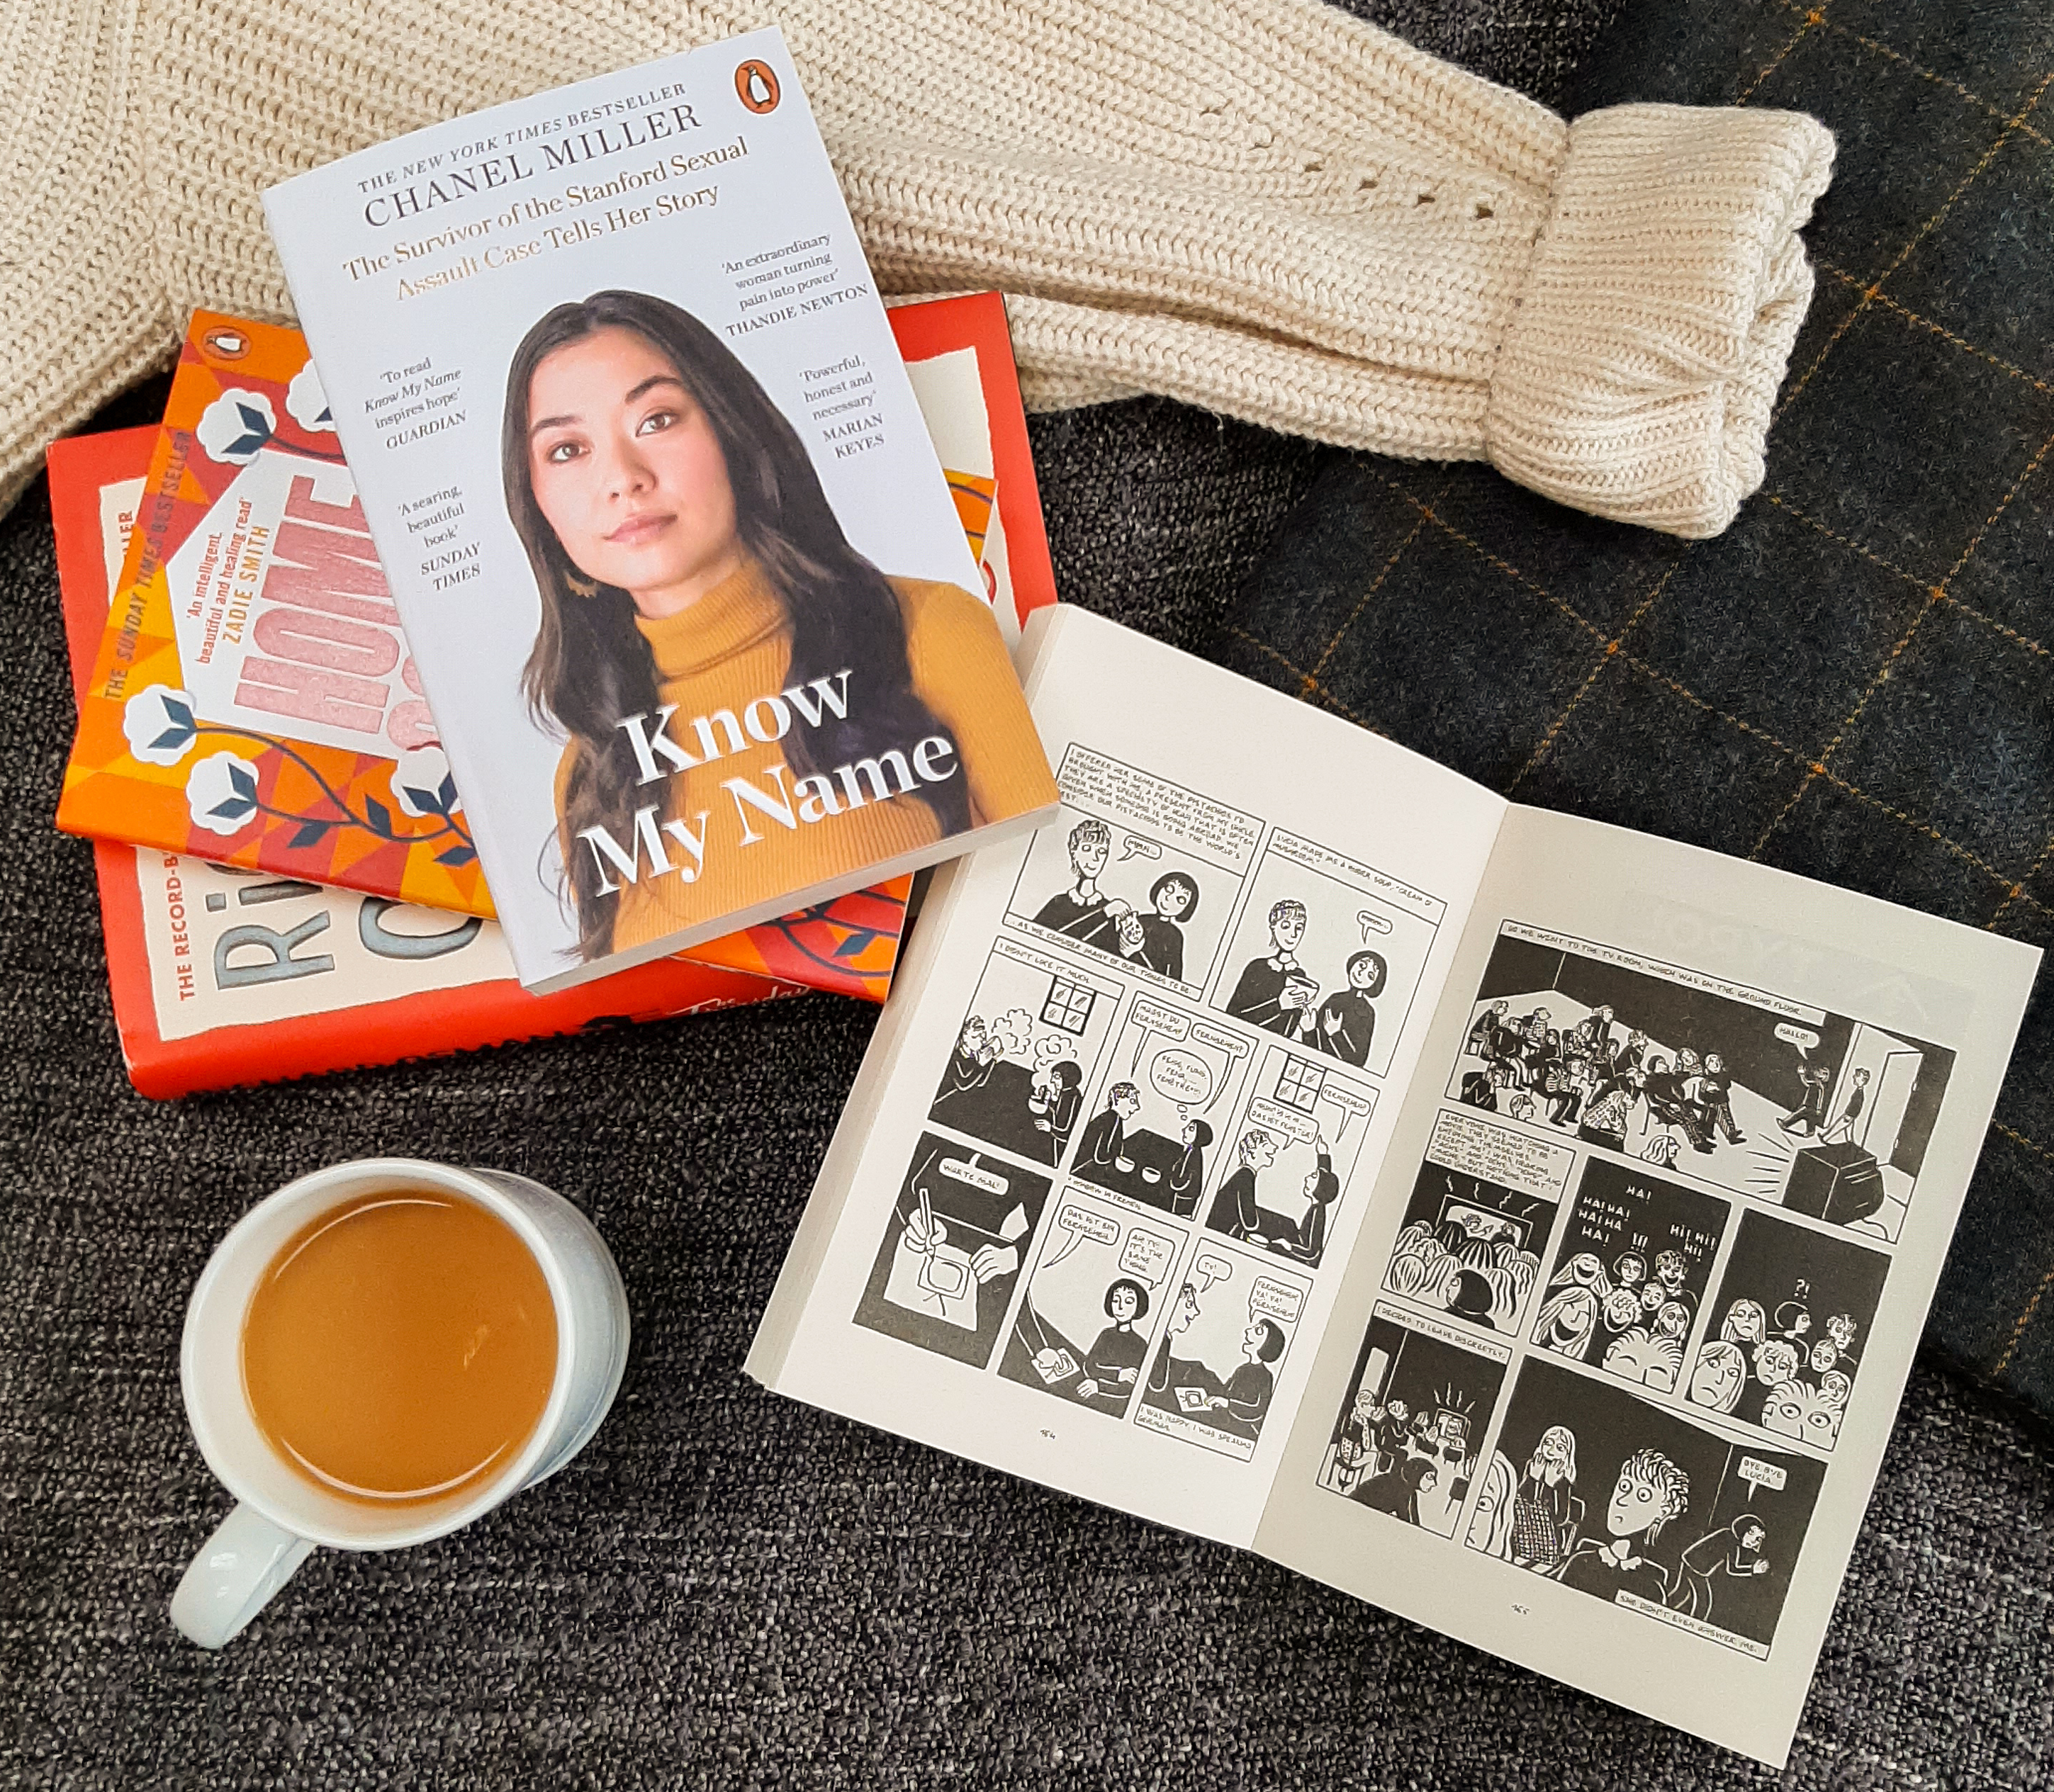 Cup of tea in a white mug, bottom left. Top right, a stack of orange and white books.